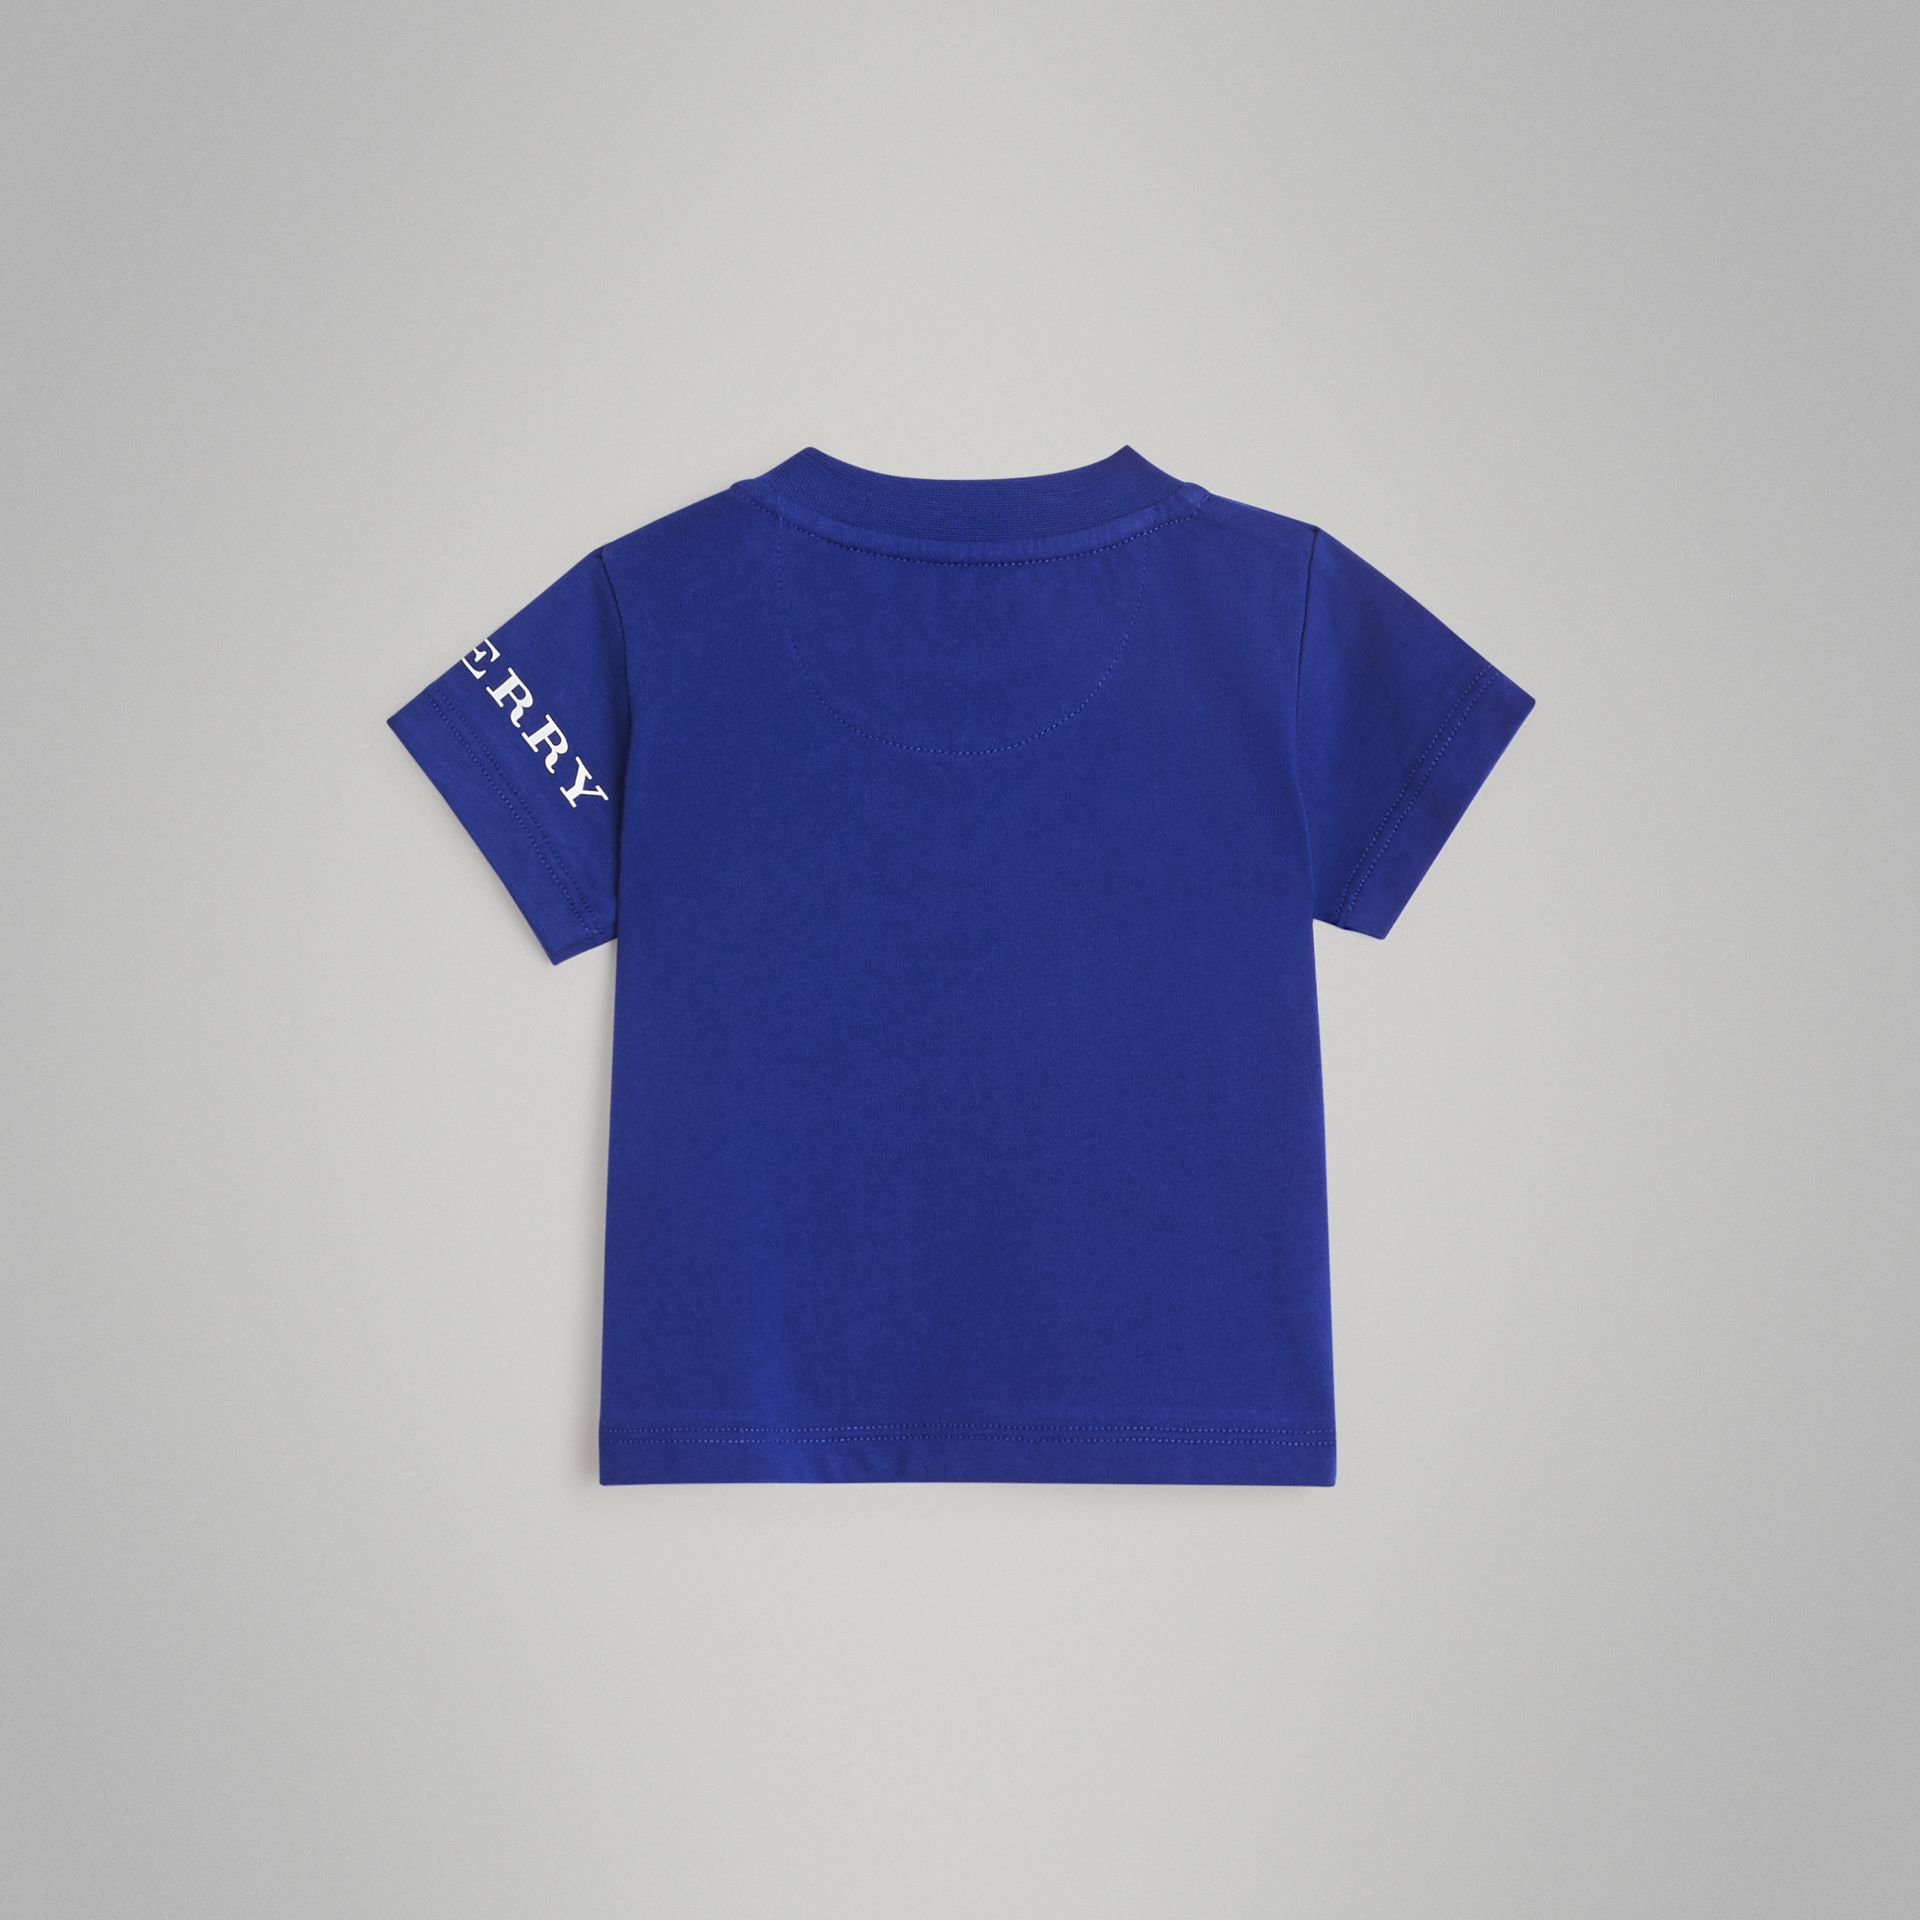 Logo Print Cotton T-shirt in Cobalt Blue - Children | Burberry - gallery image 3